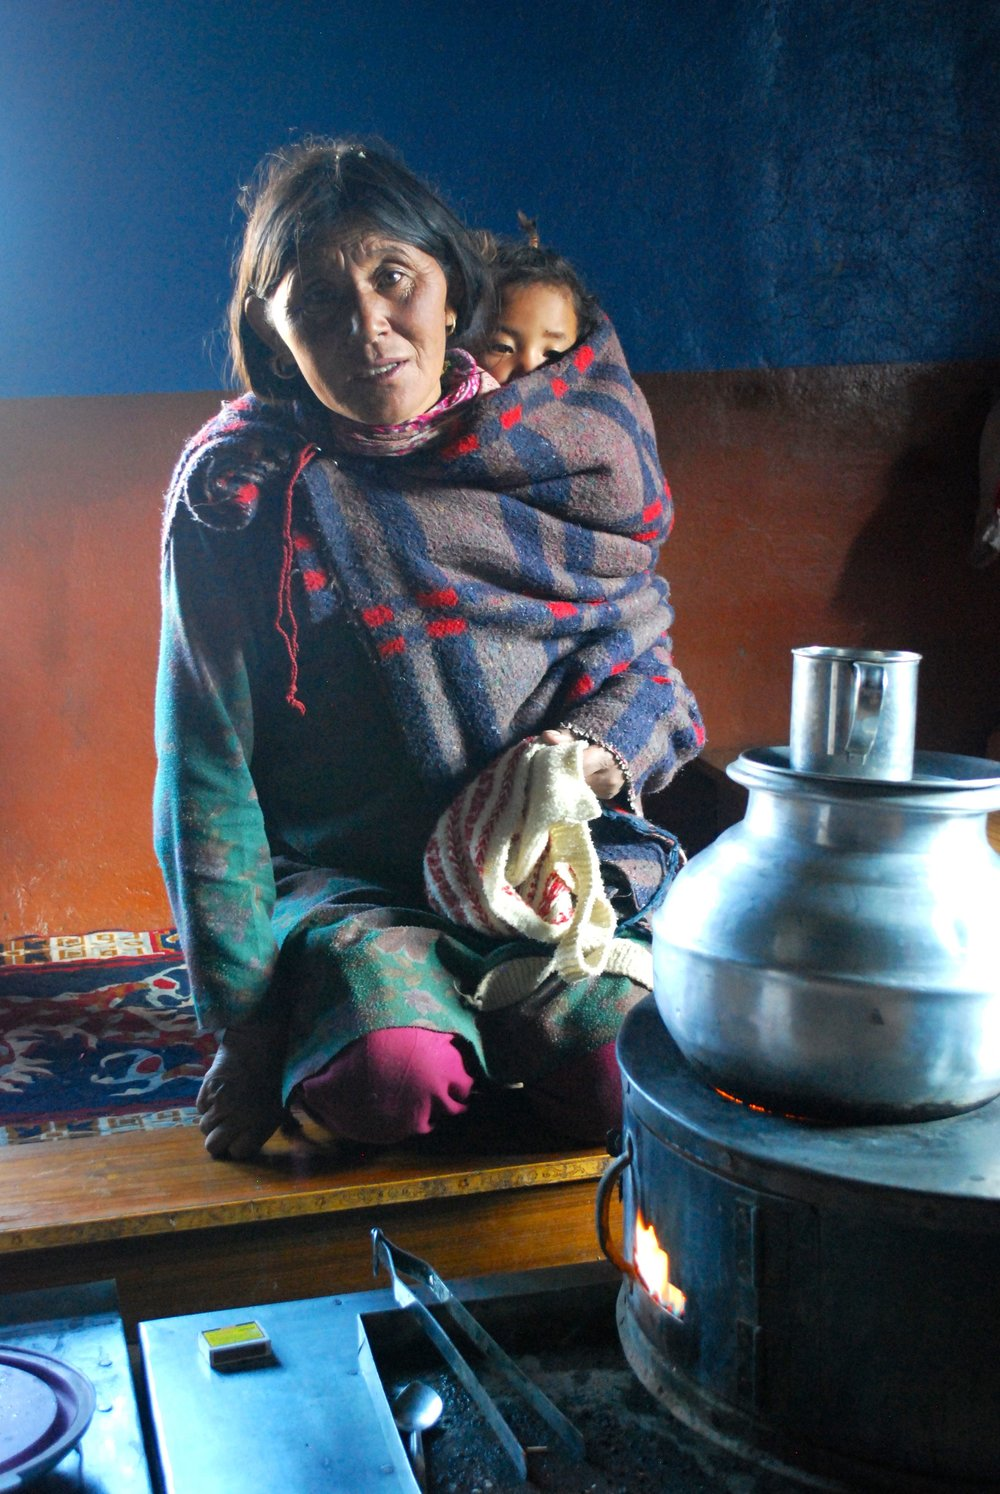 India-Spiti-Demul-grandmother.jpg